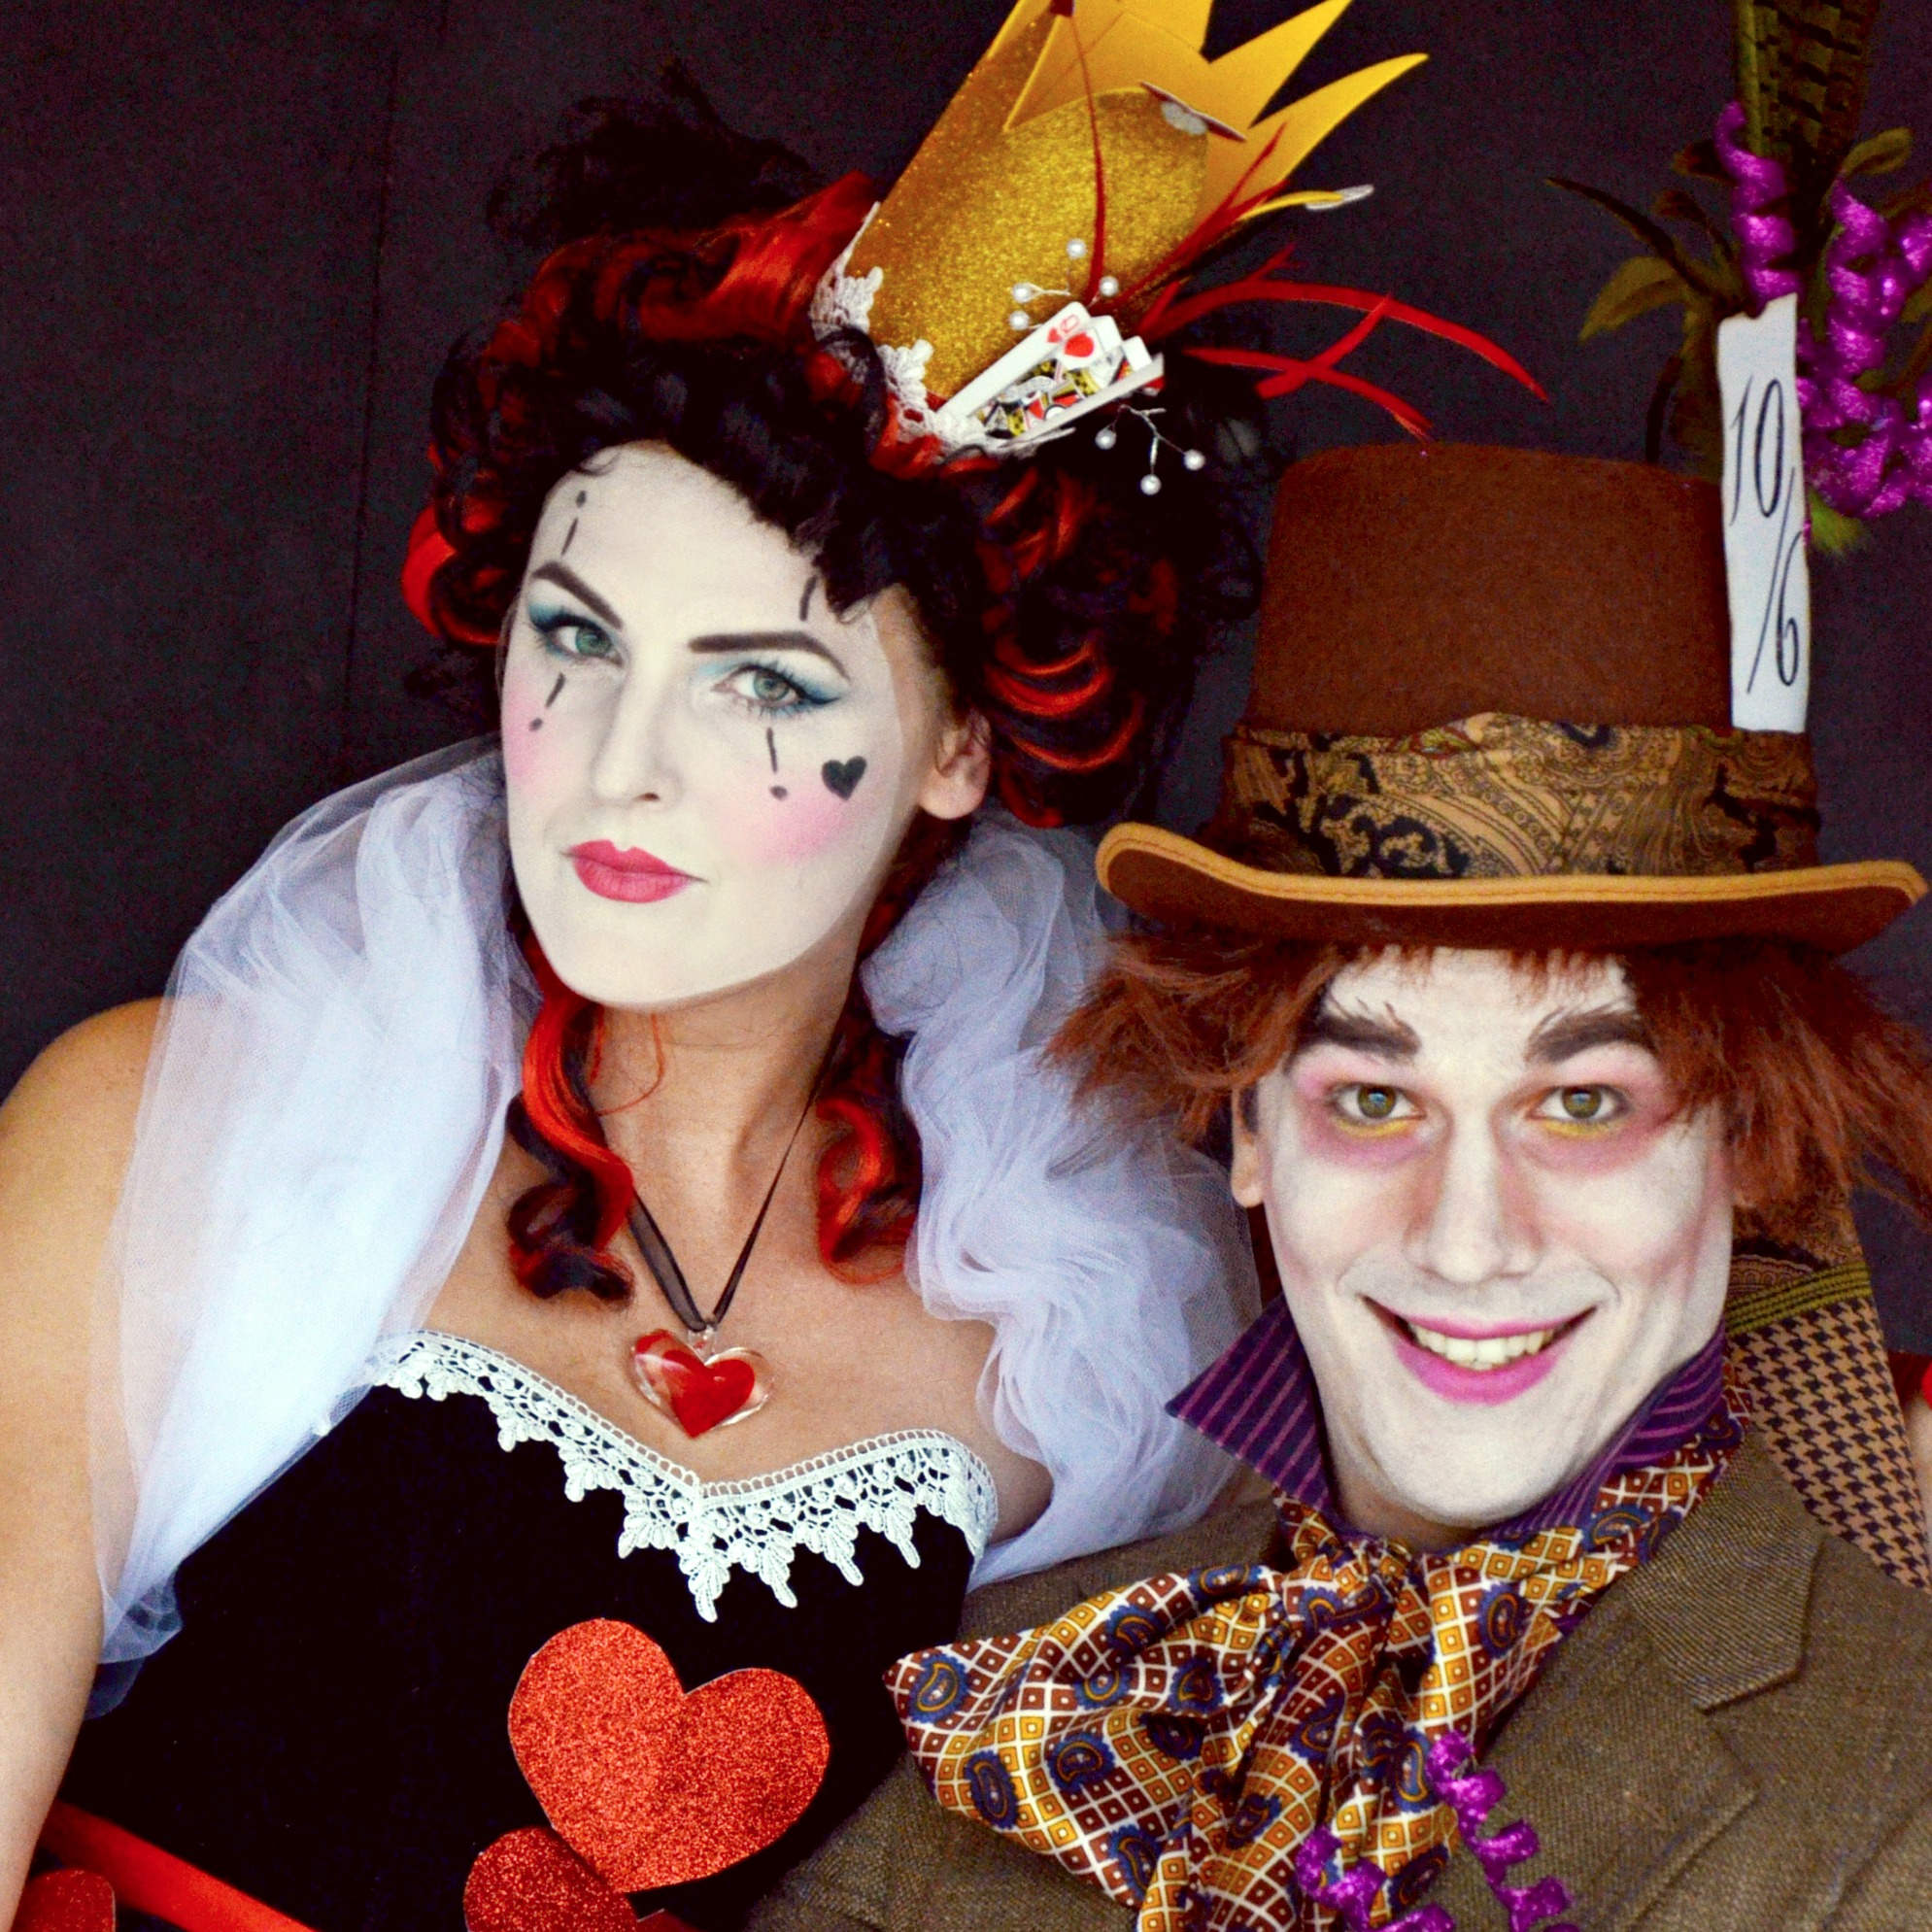 mad hatter and queen of hearts|couples halloween costume ideas